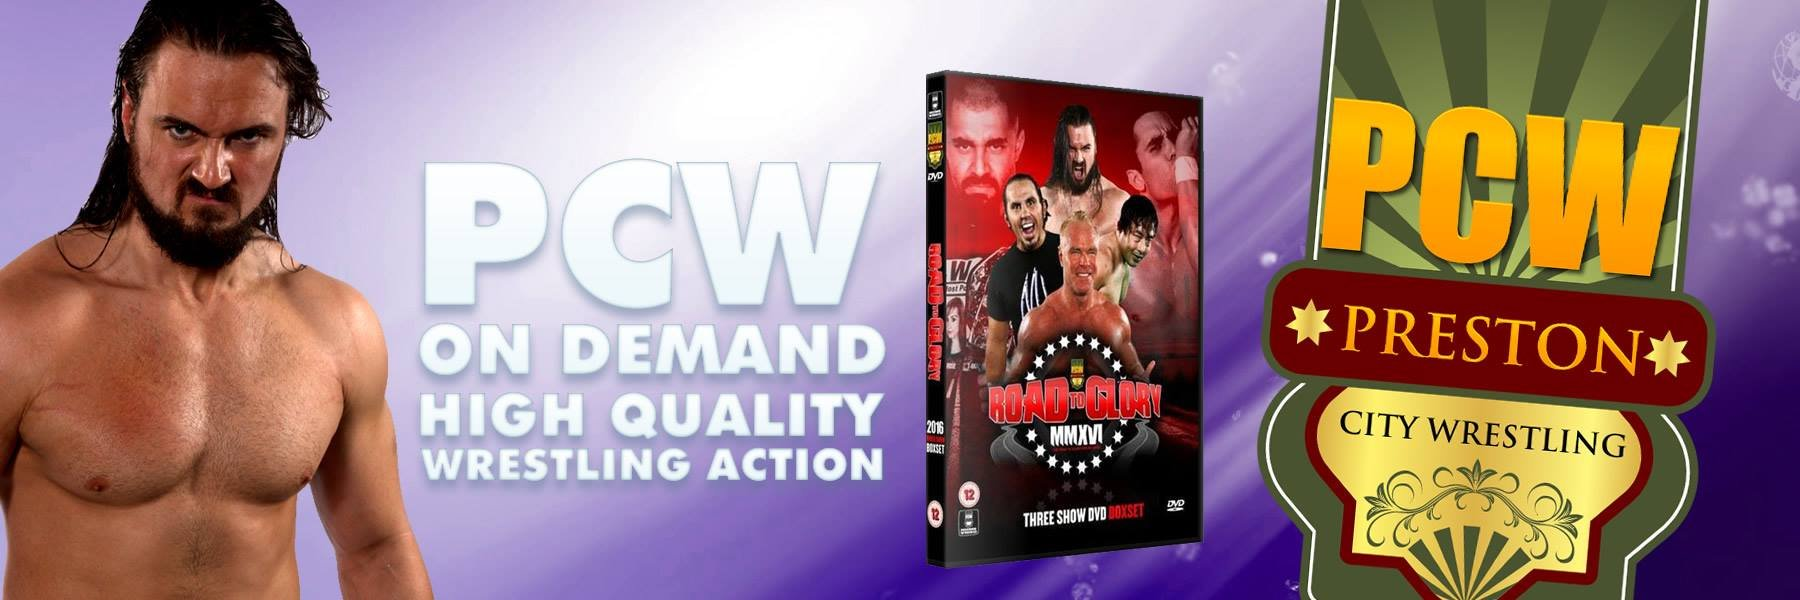 PCW Road To Glory 2016 - Show 1,2 and 3 added to on demand now!